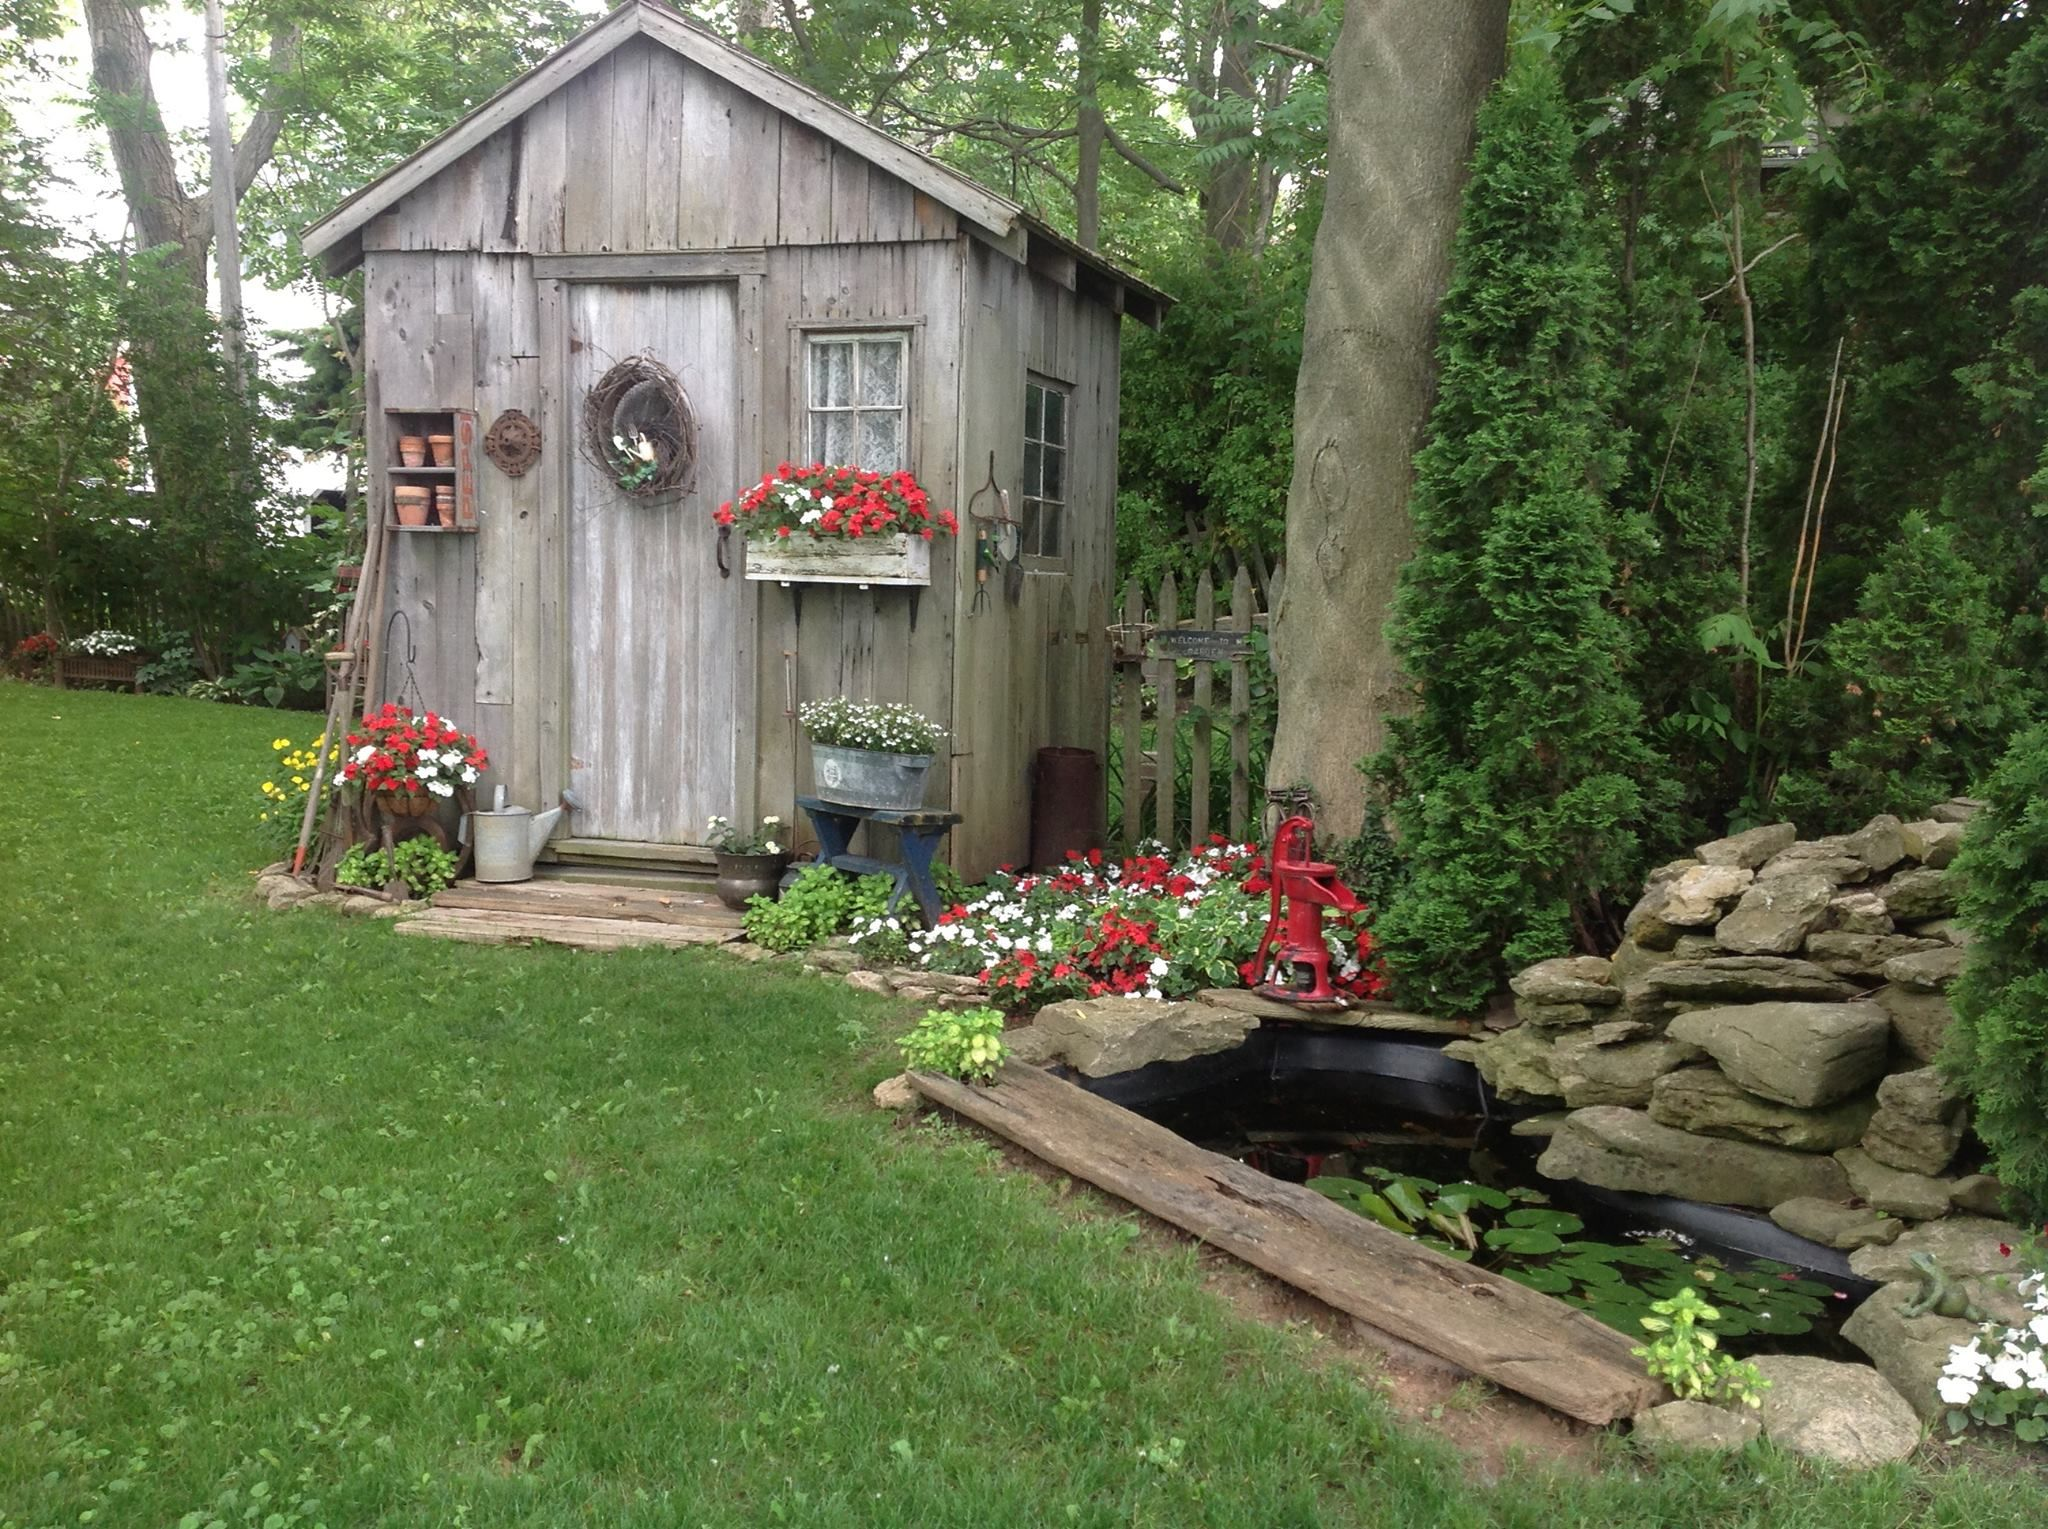 Garden Sheds With Porch 437 best sheds for yard & garden images on pinterest | garden